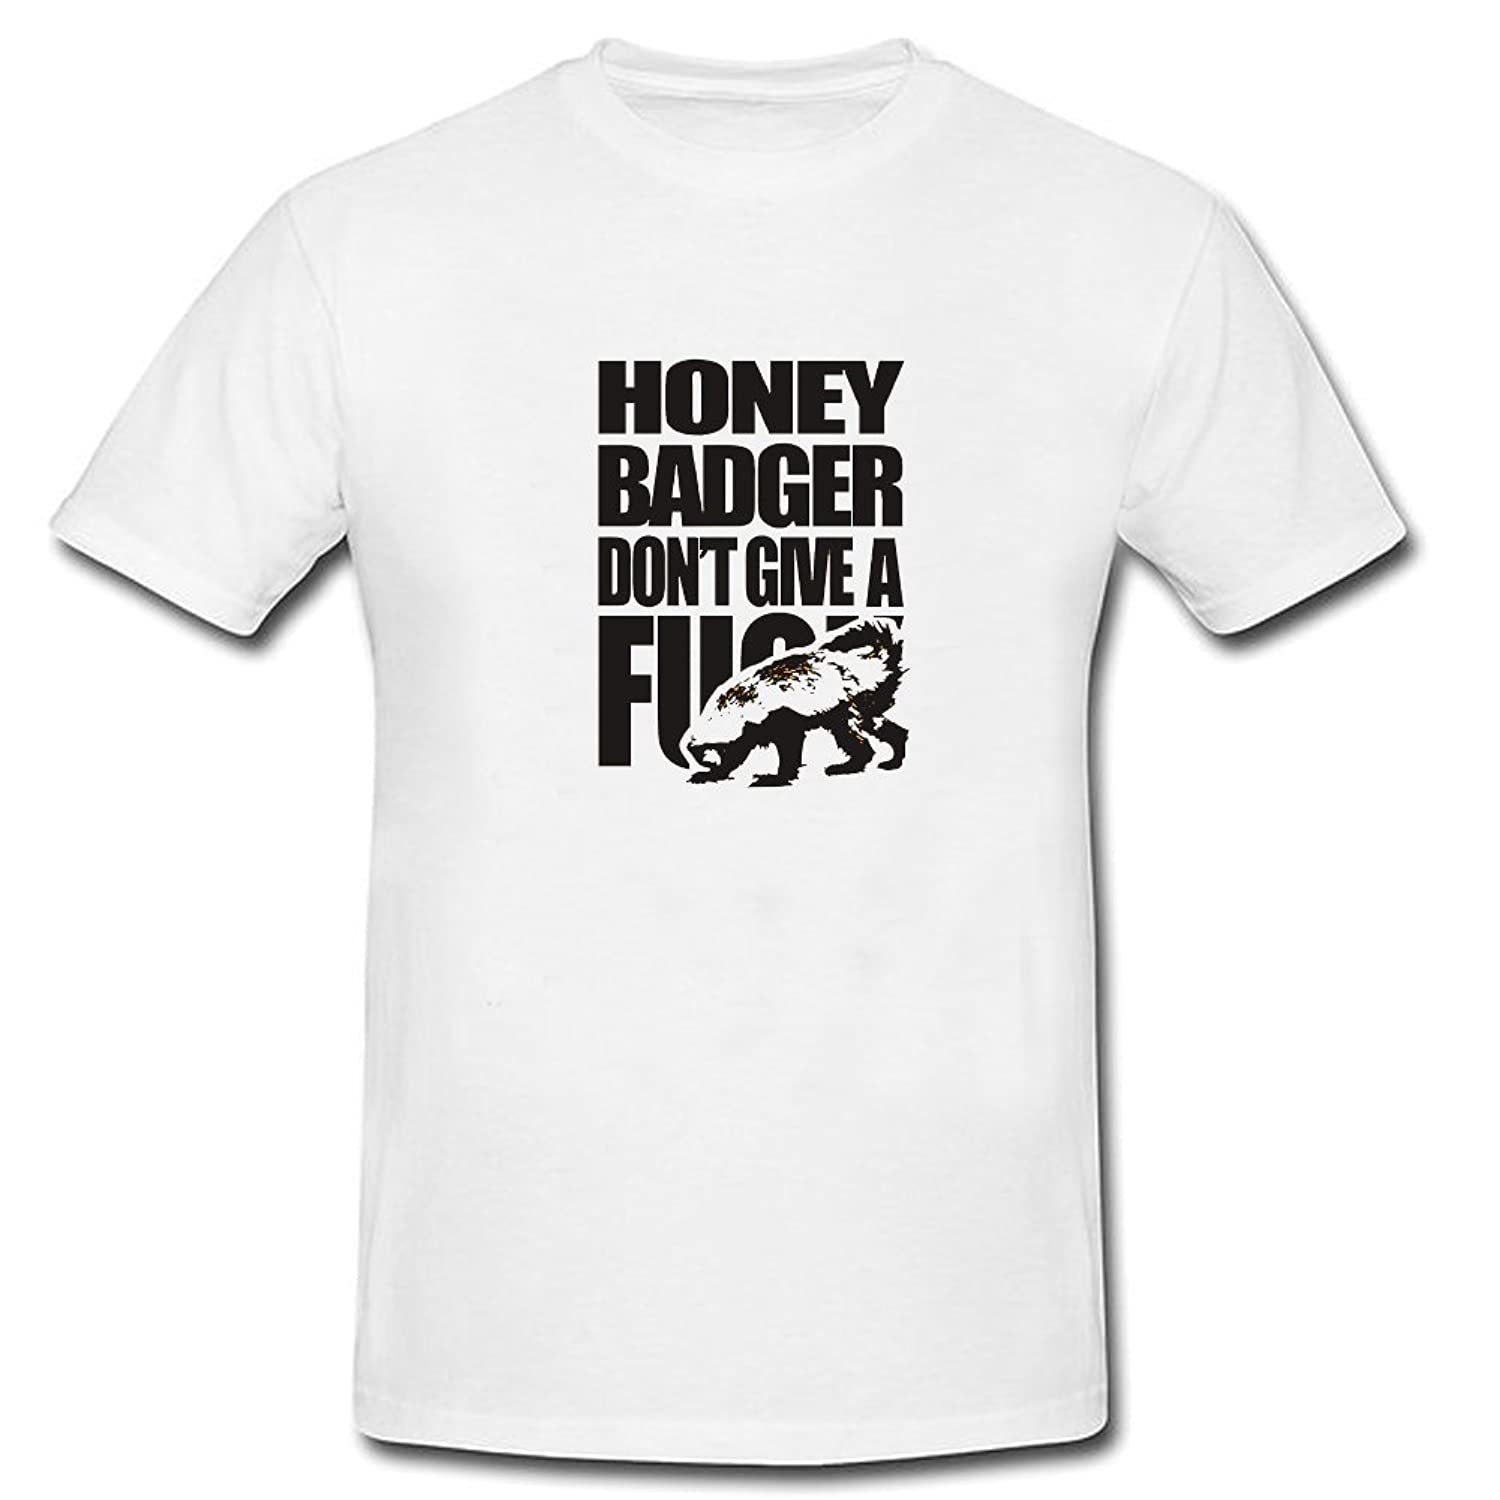 BEOL Honey Badger Don't Give A Shit Athletic Short Sleeve T Shirts White